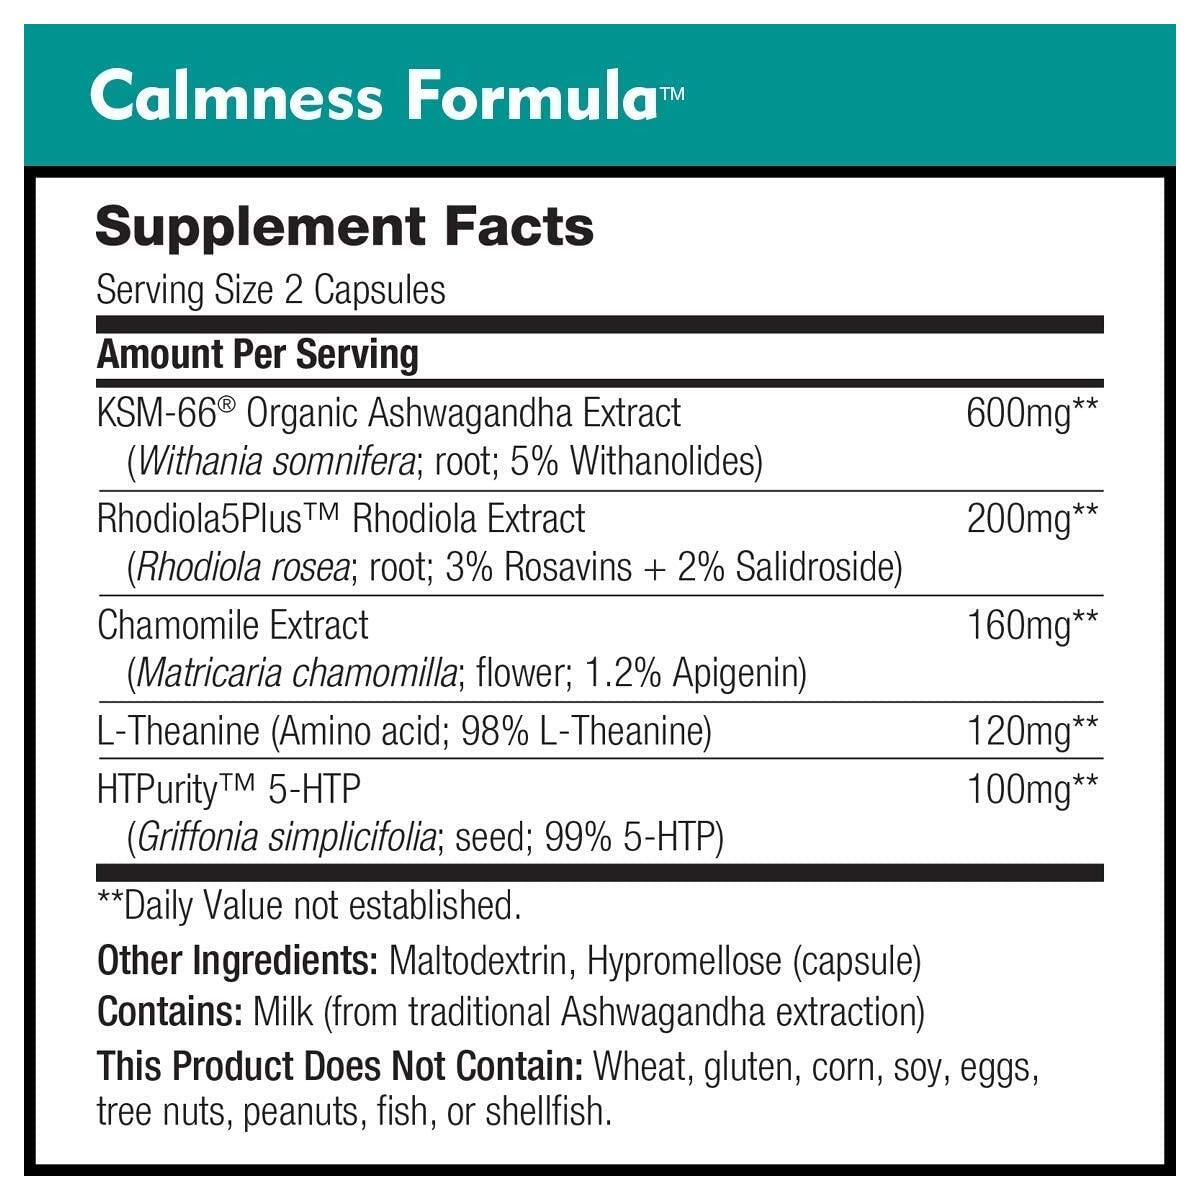 Calmness Formula by DailyNutra - Stress and Anxiety Relief Supplement - Promotes a Natural Calm Mood | Effective & Safe - Featuring Clinically Studied KSM-66 Ashwagandha (90 Capsules)